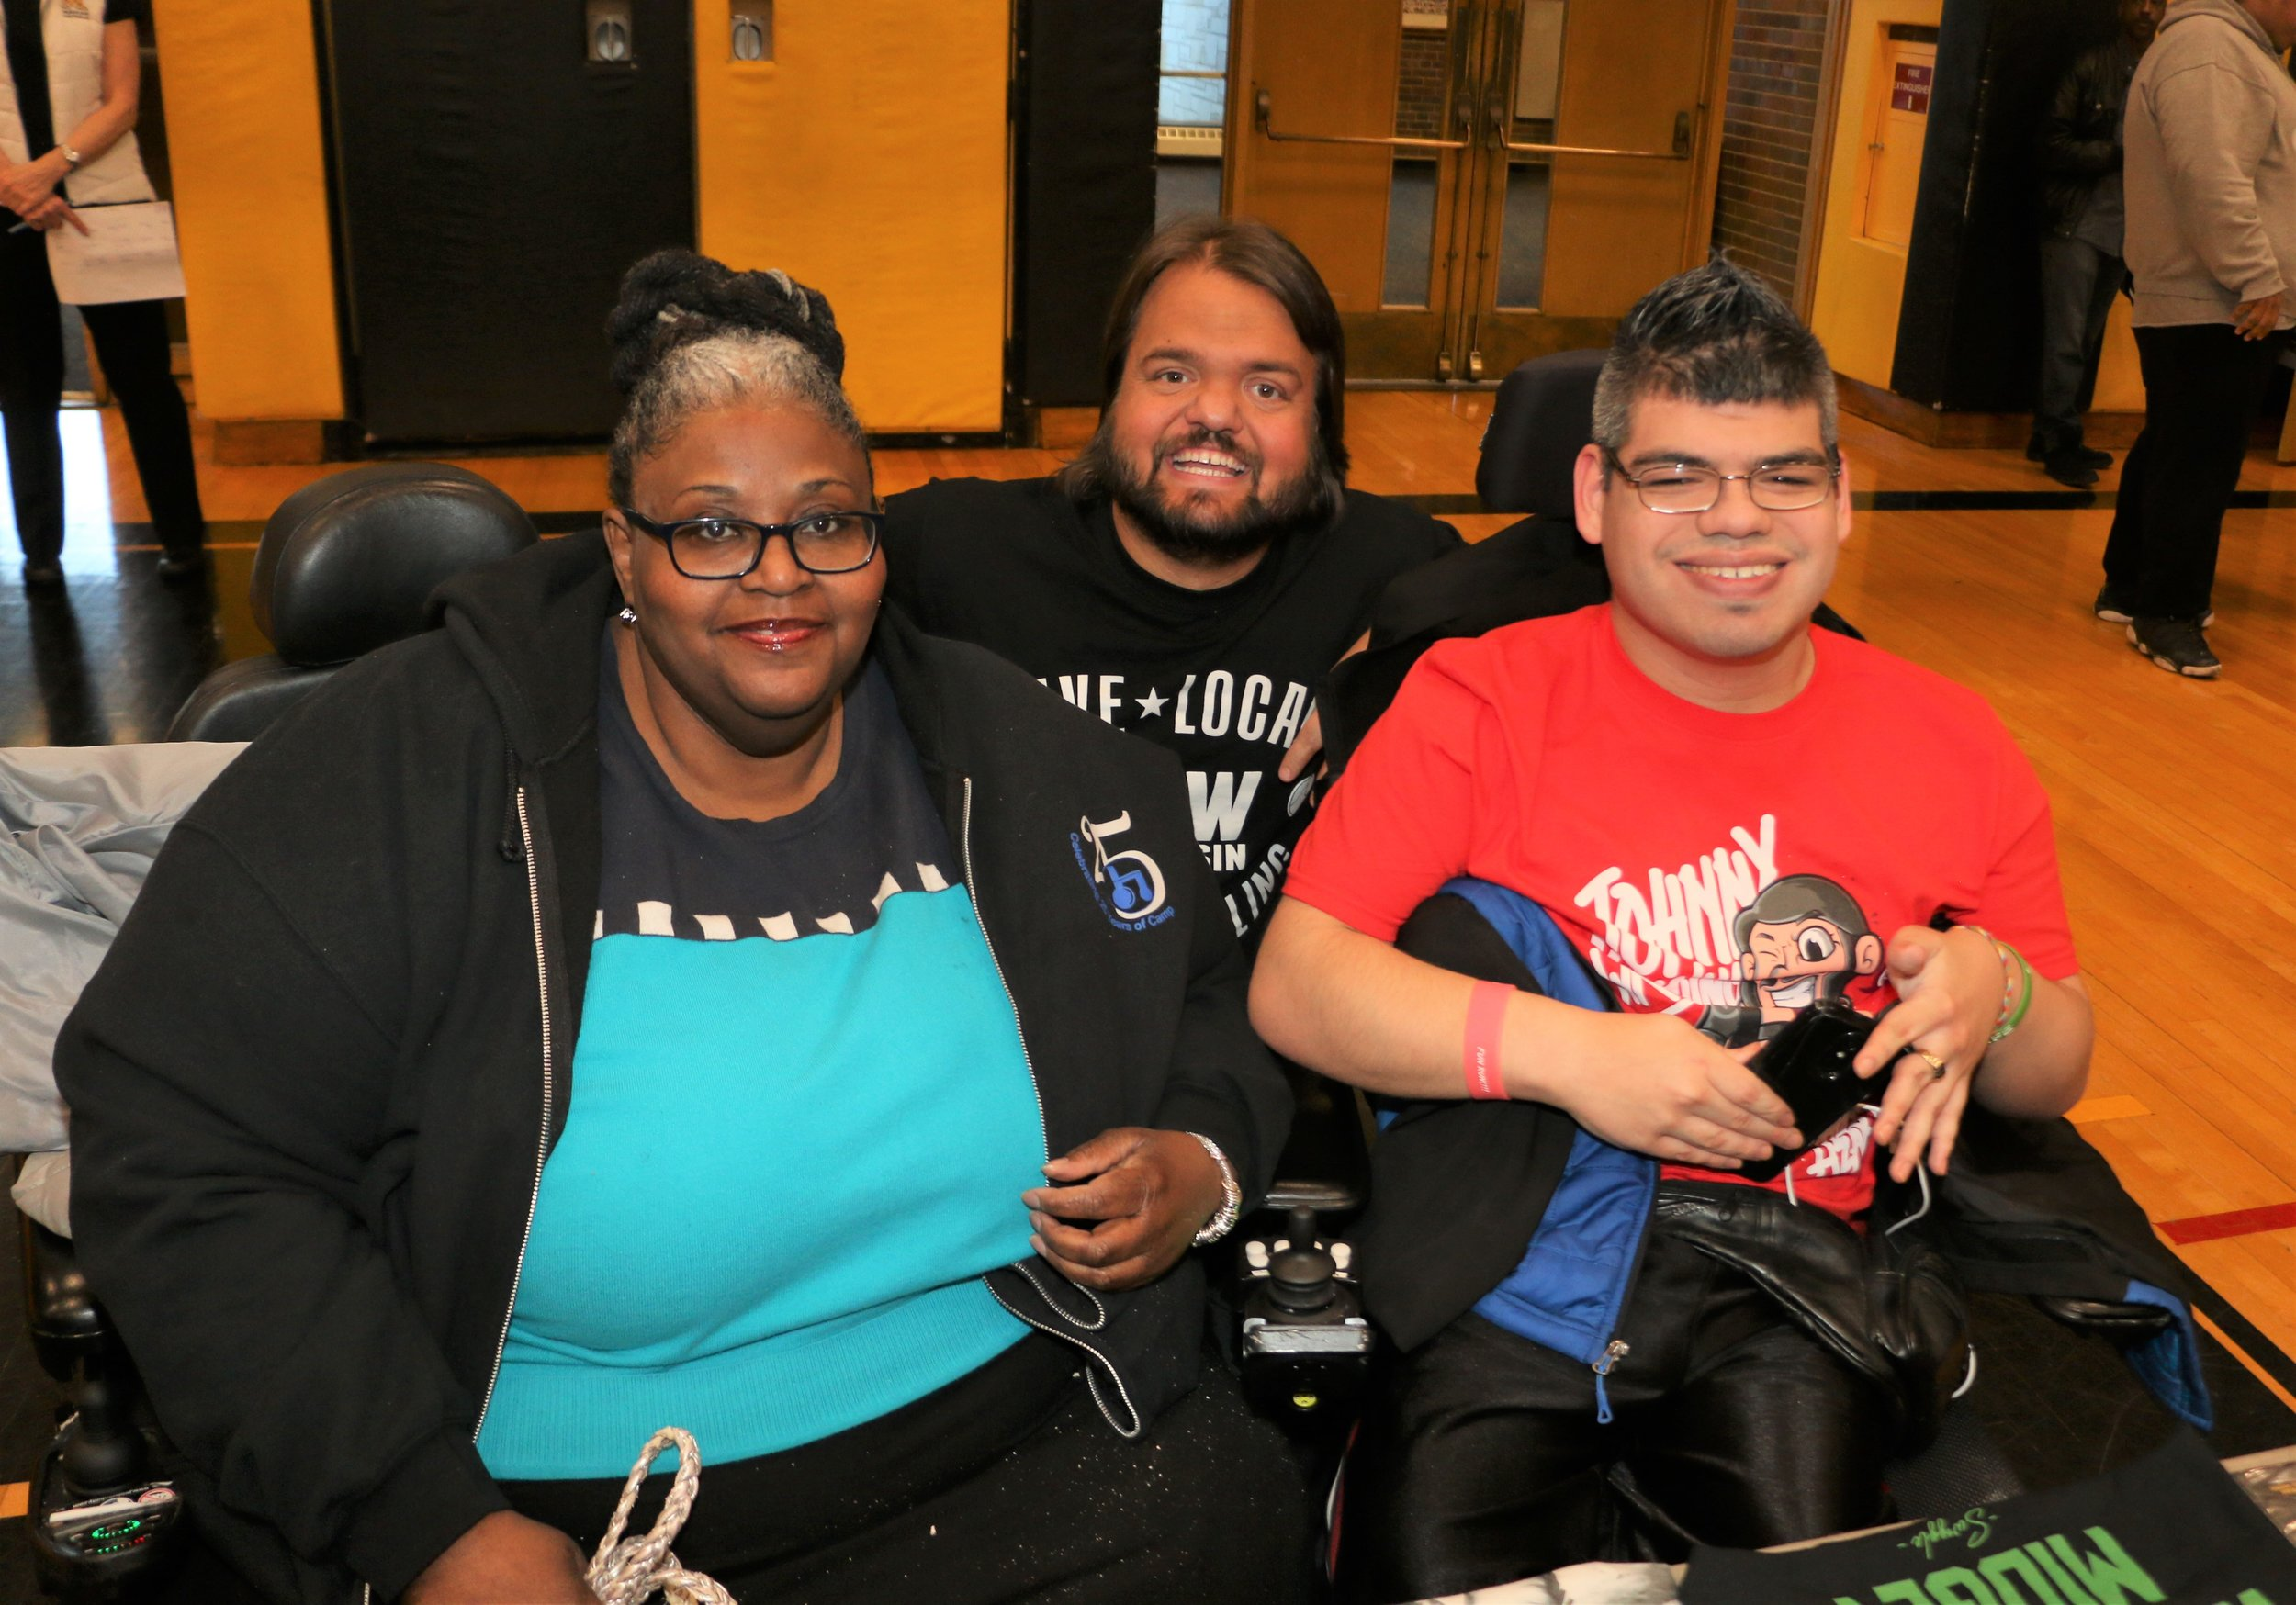 Swoggle (aka Hornswoggle), center, poses with fans during the VIP Fan Fest.